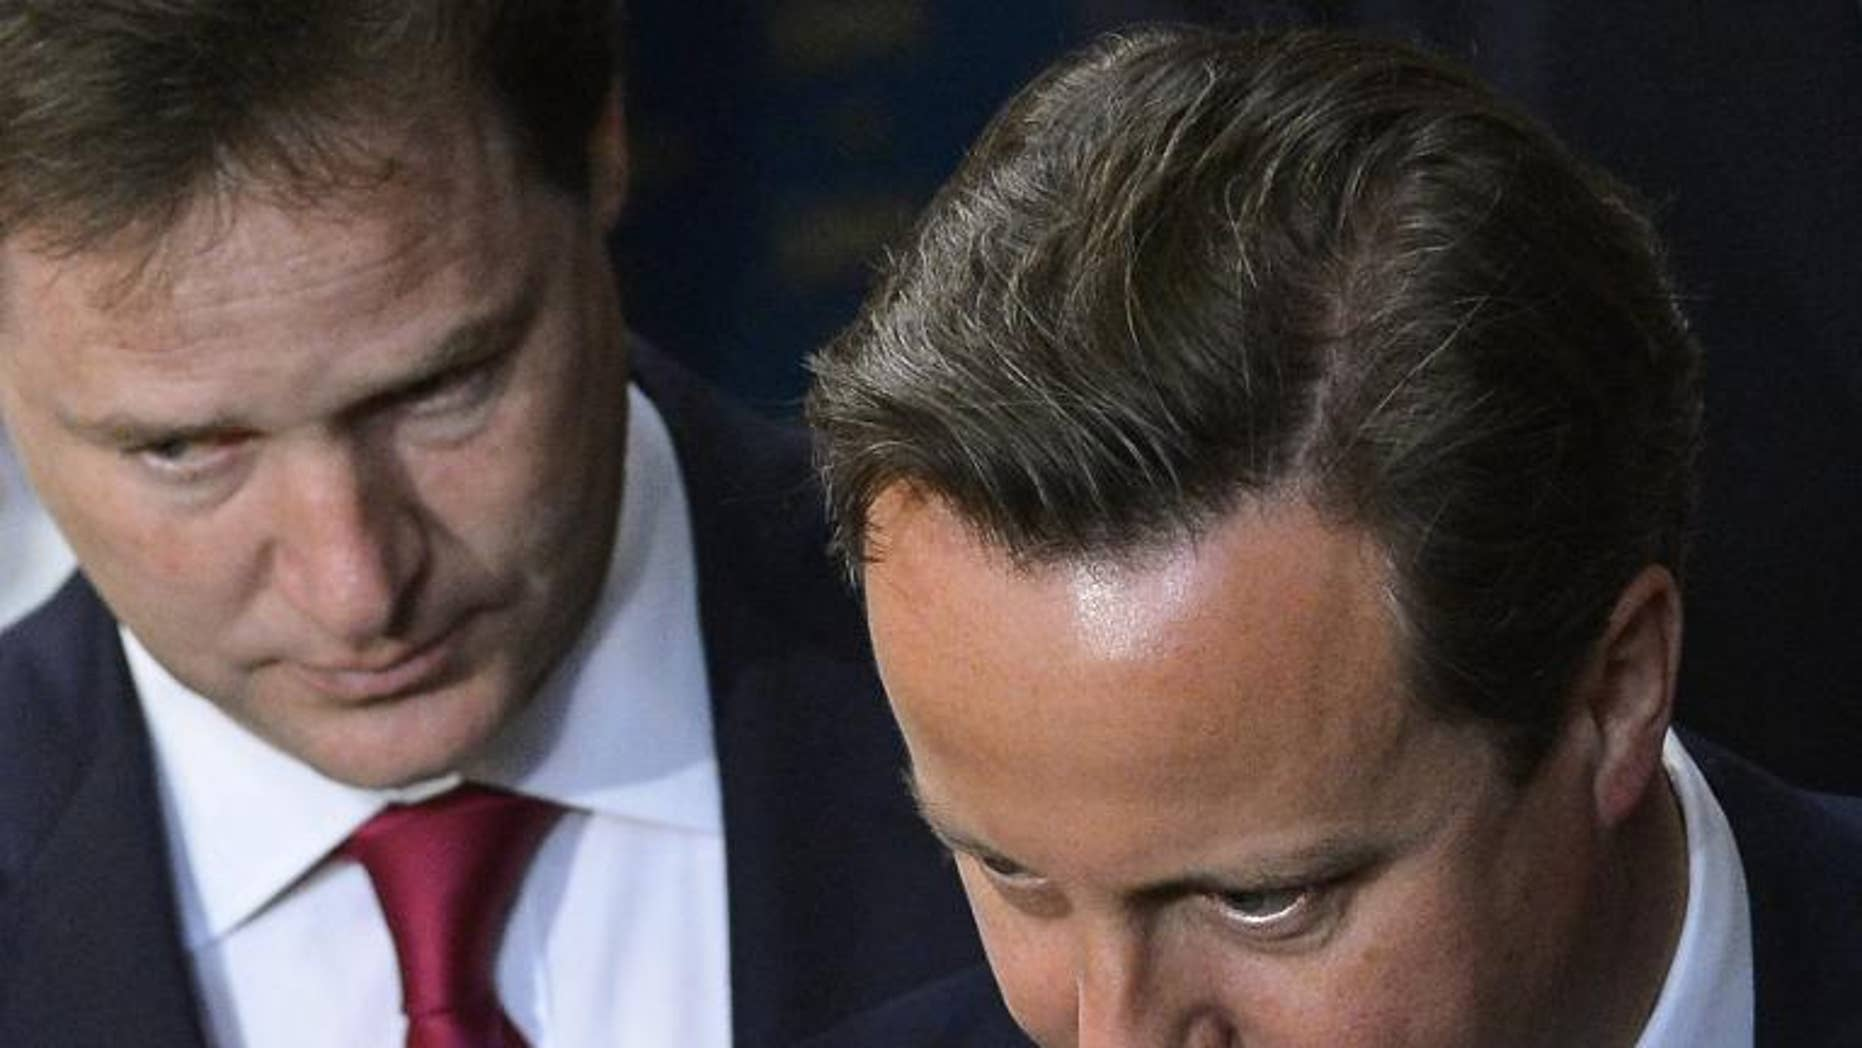 Downing Street denied Saturday claims that David Cameron and Nick Clegg, pictured in May, have held talks about forming another Conservative-Liberal Democrat coalition after the next general election in 2015.